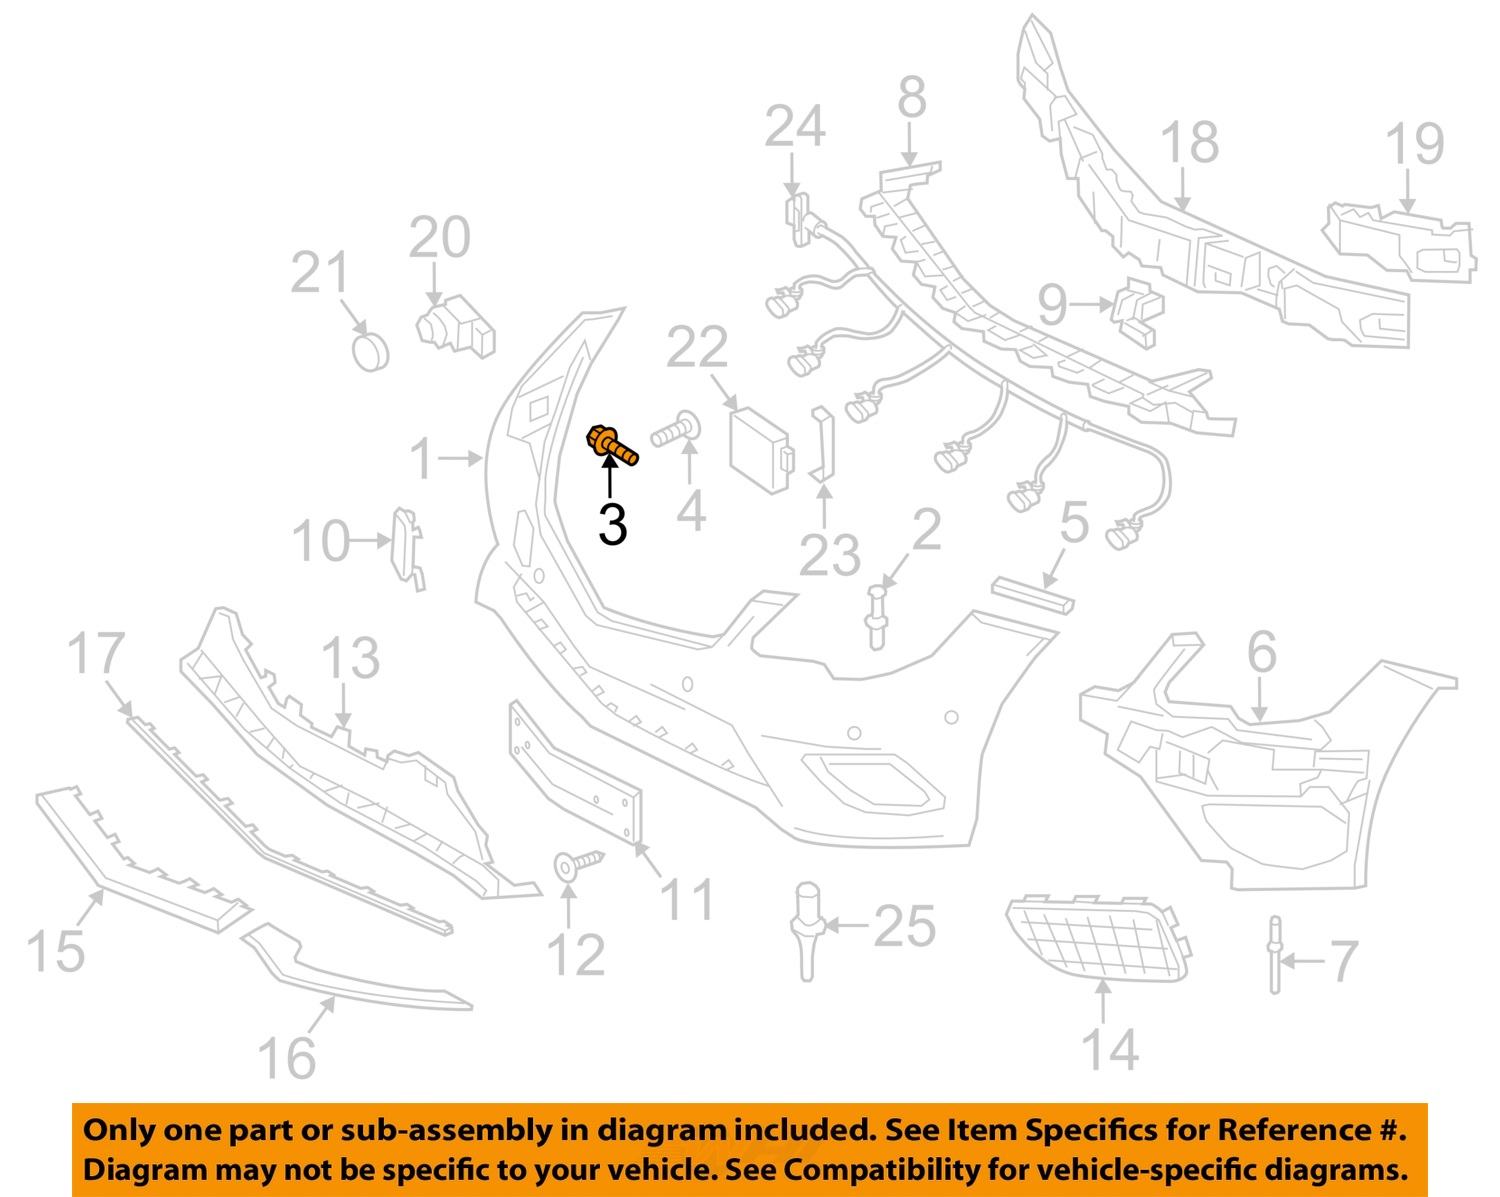 Mercedes Oem 14 16 E350 Front Bumper Grille Grill Guide